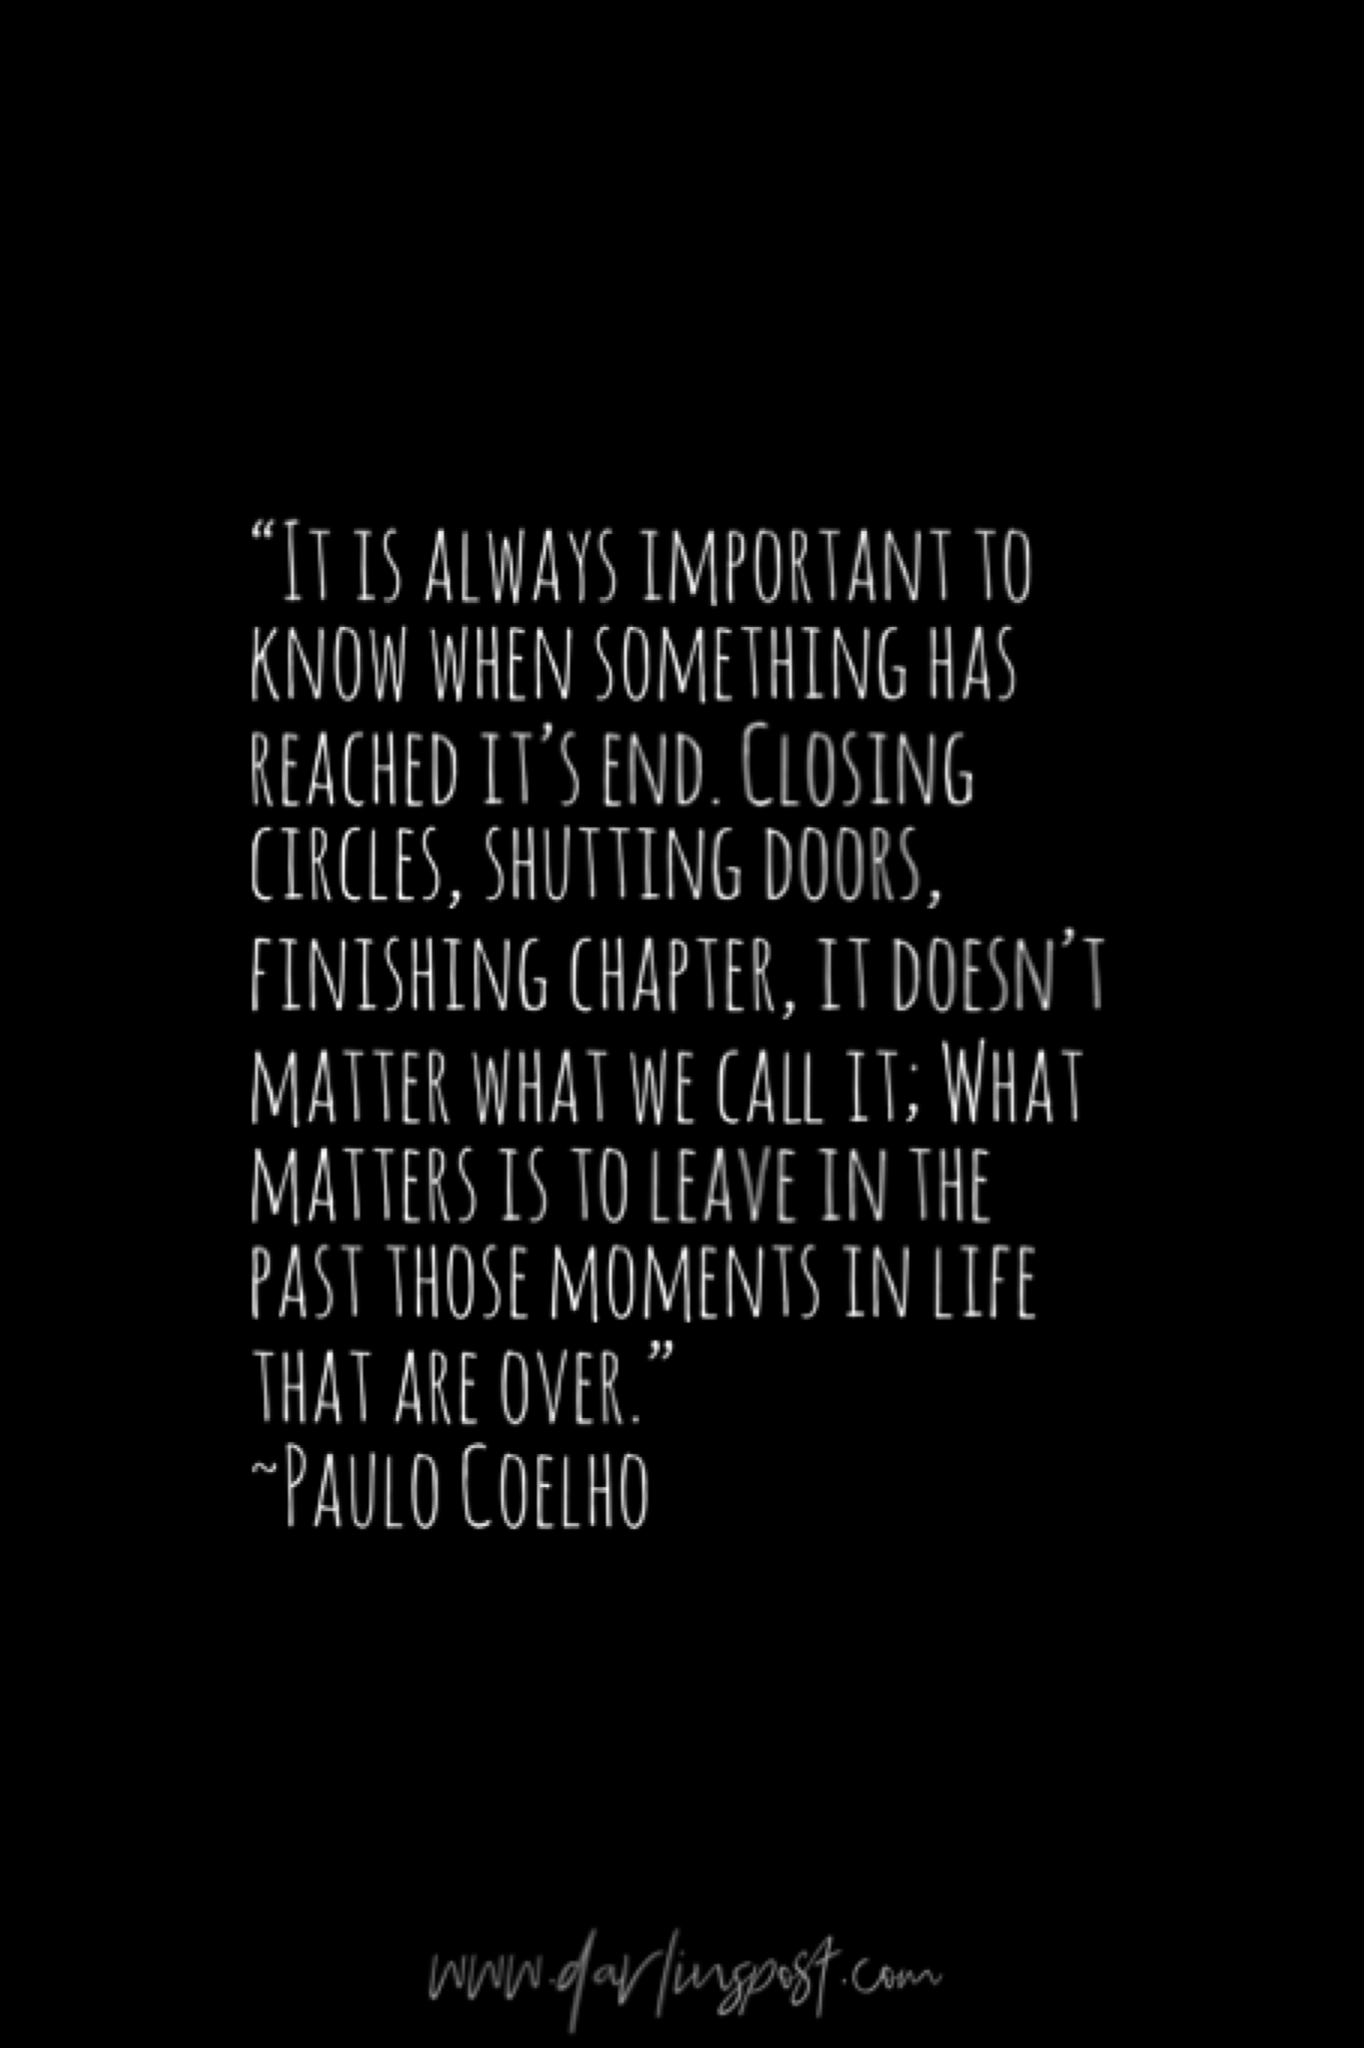 Quotes And Sayings By Famous Novelist Paulo Coelho Past Quotes Circle Quotes Leaving Quotes